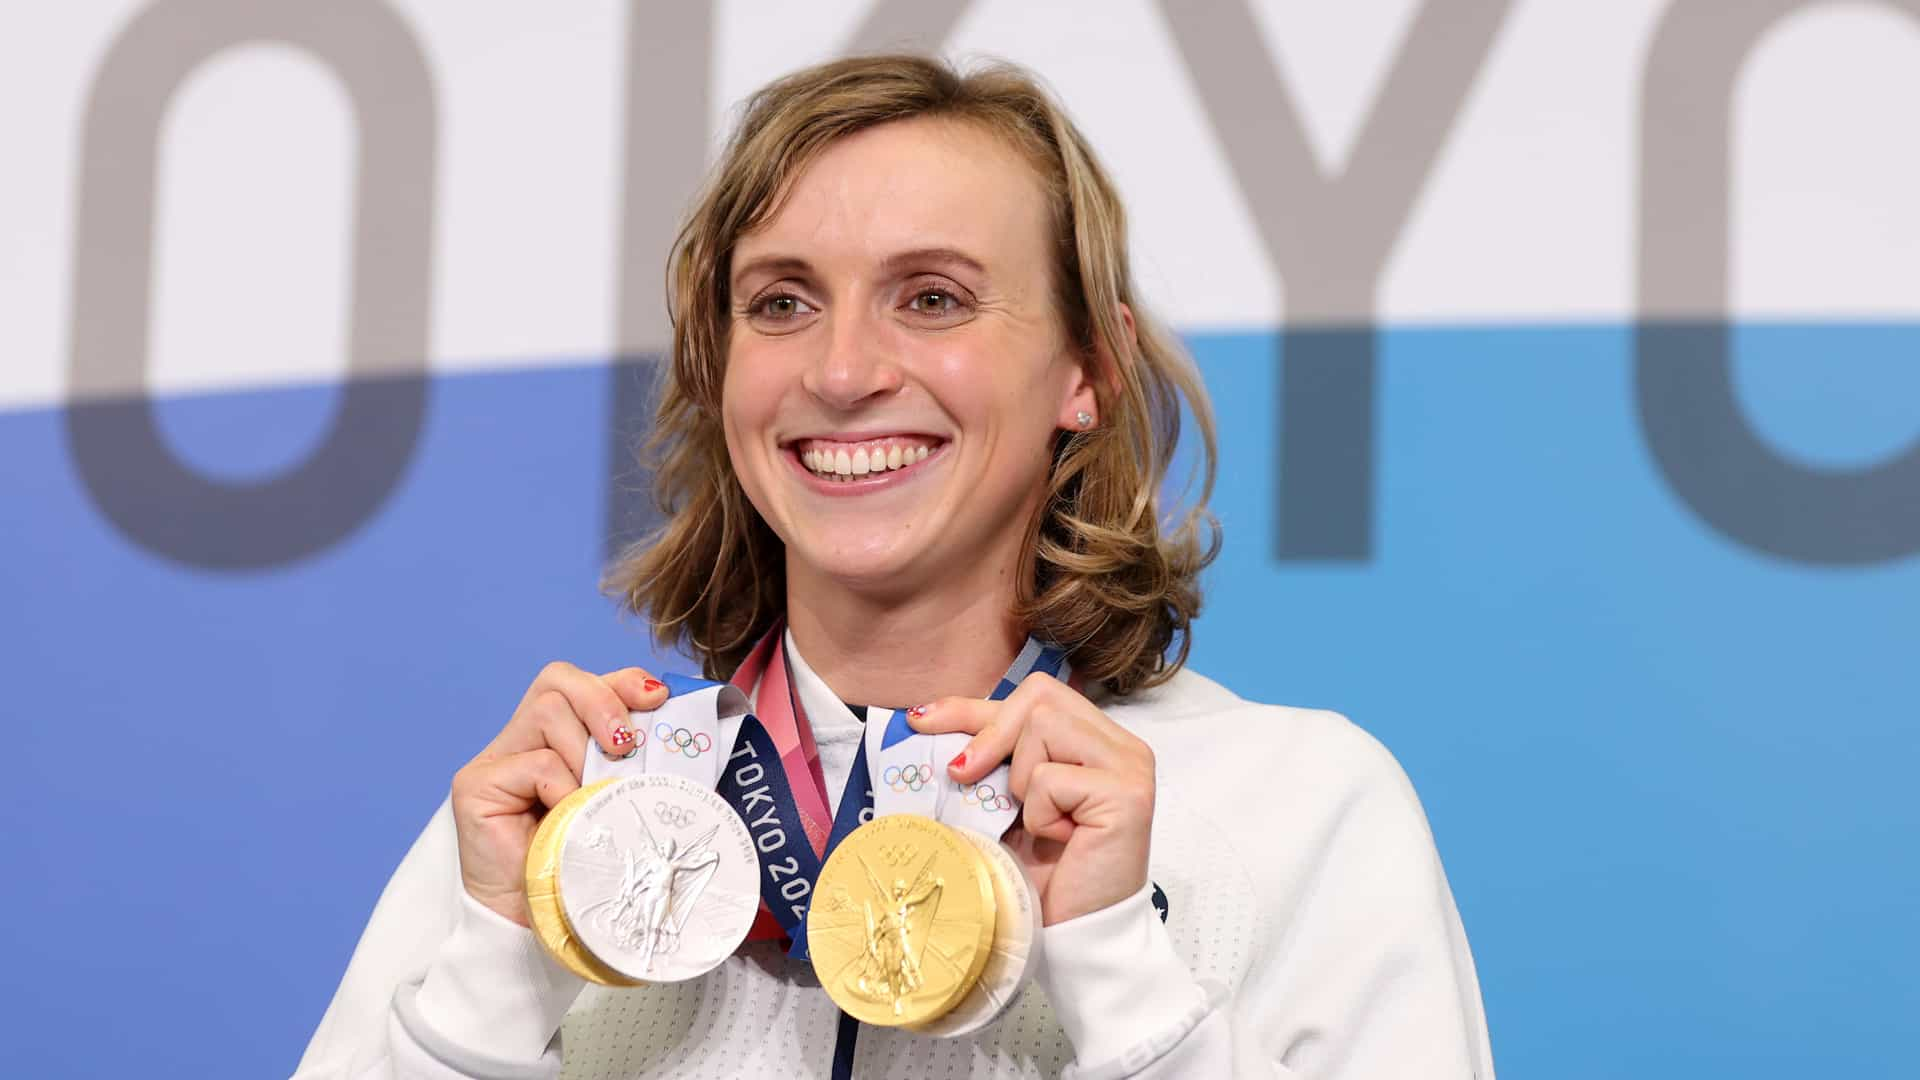 Katie Ledecky Heads to Florida to Train, Coach With '88 Medalist Anthony Nesty